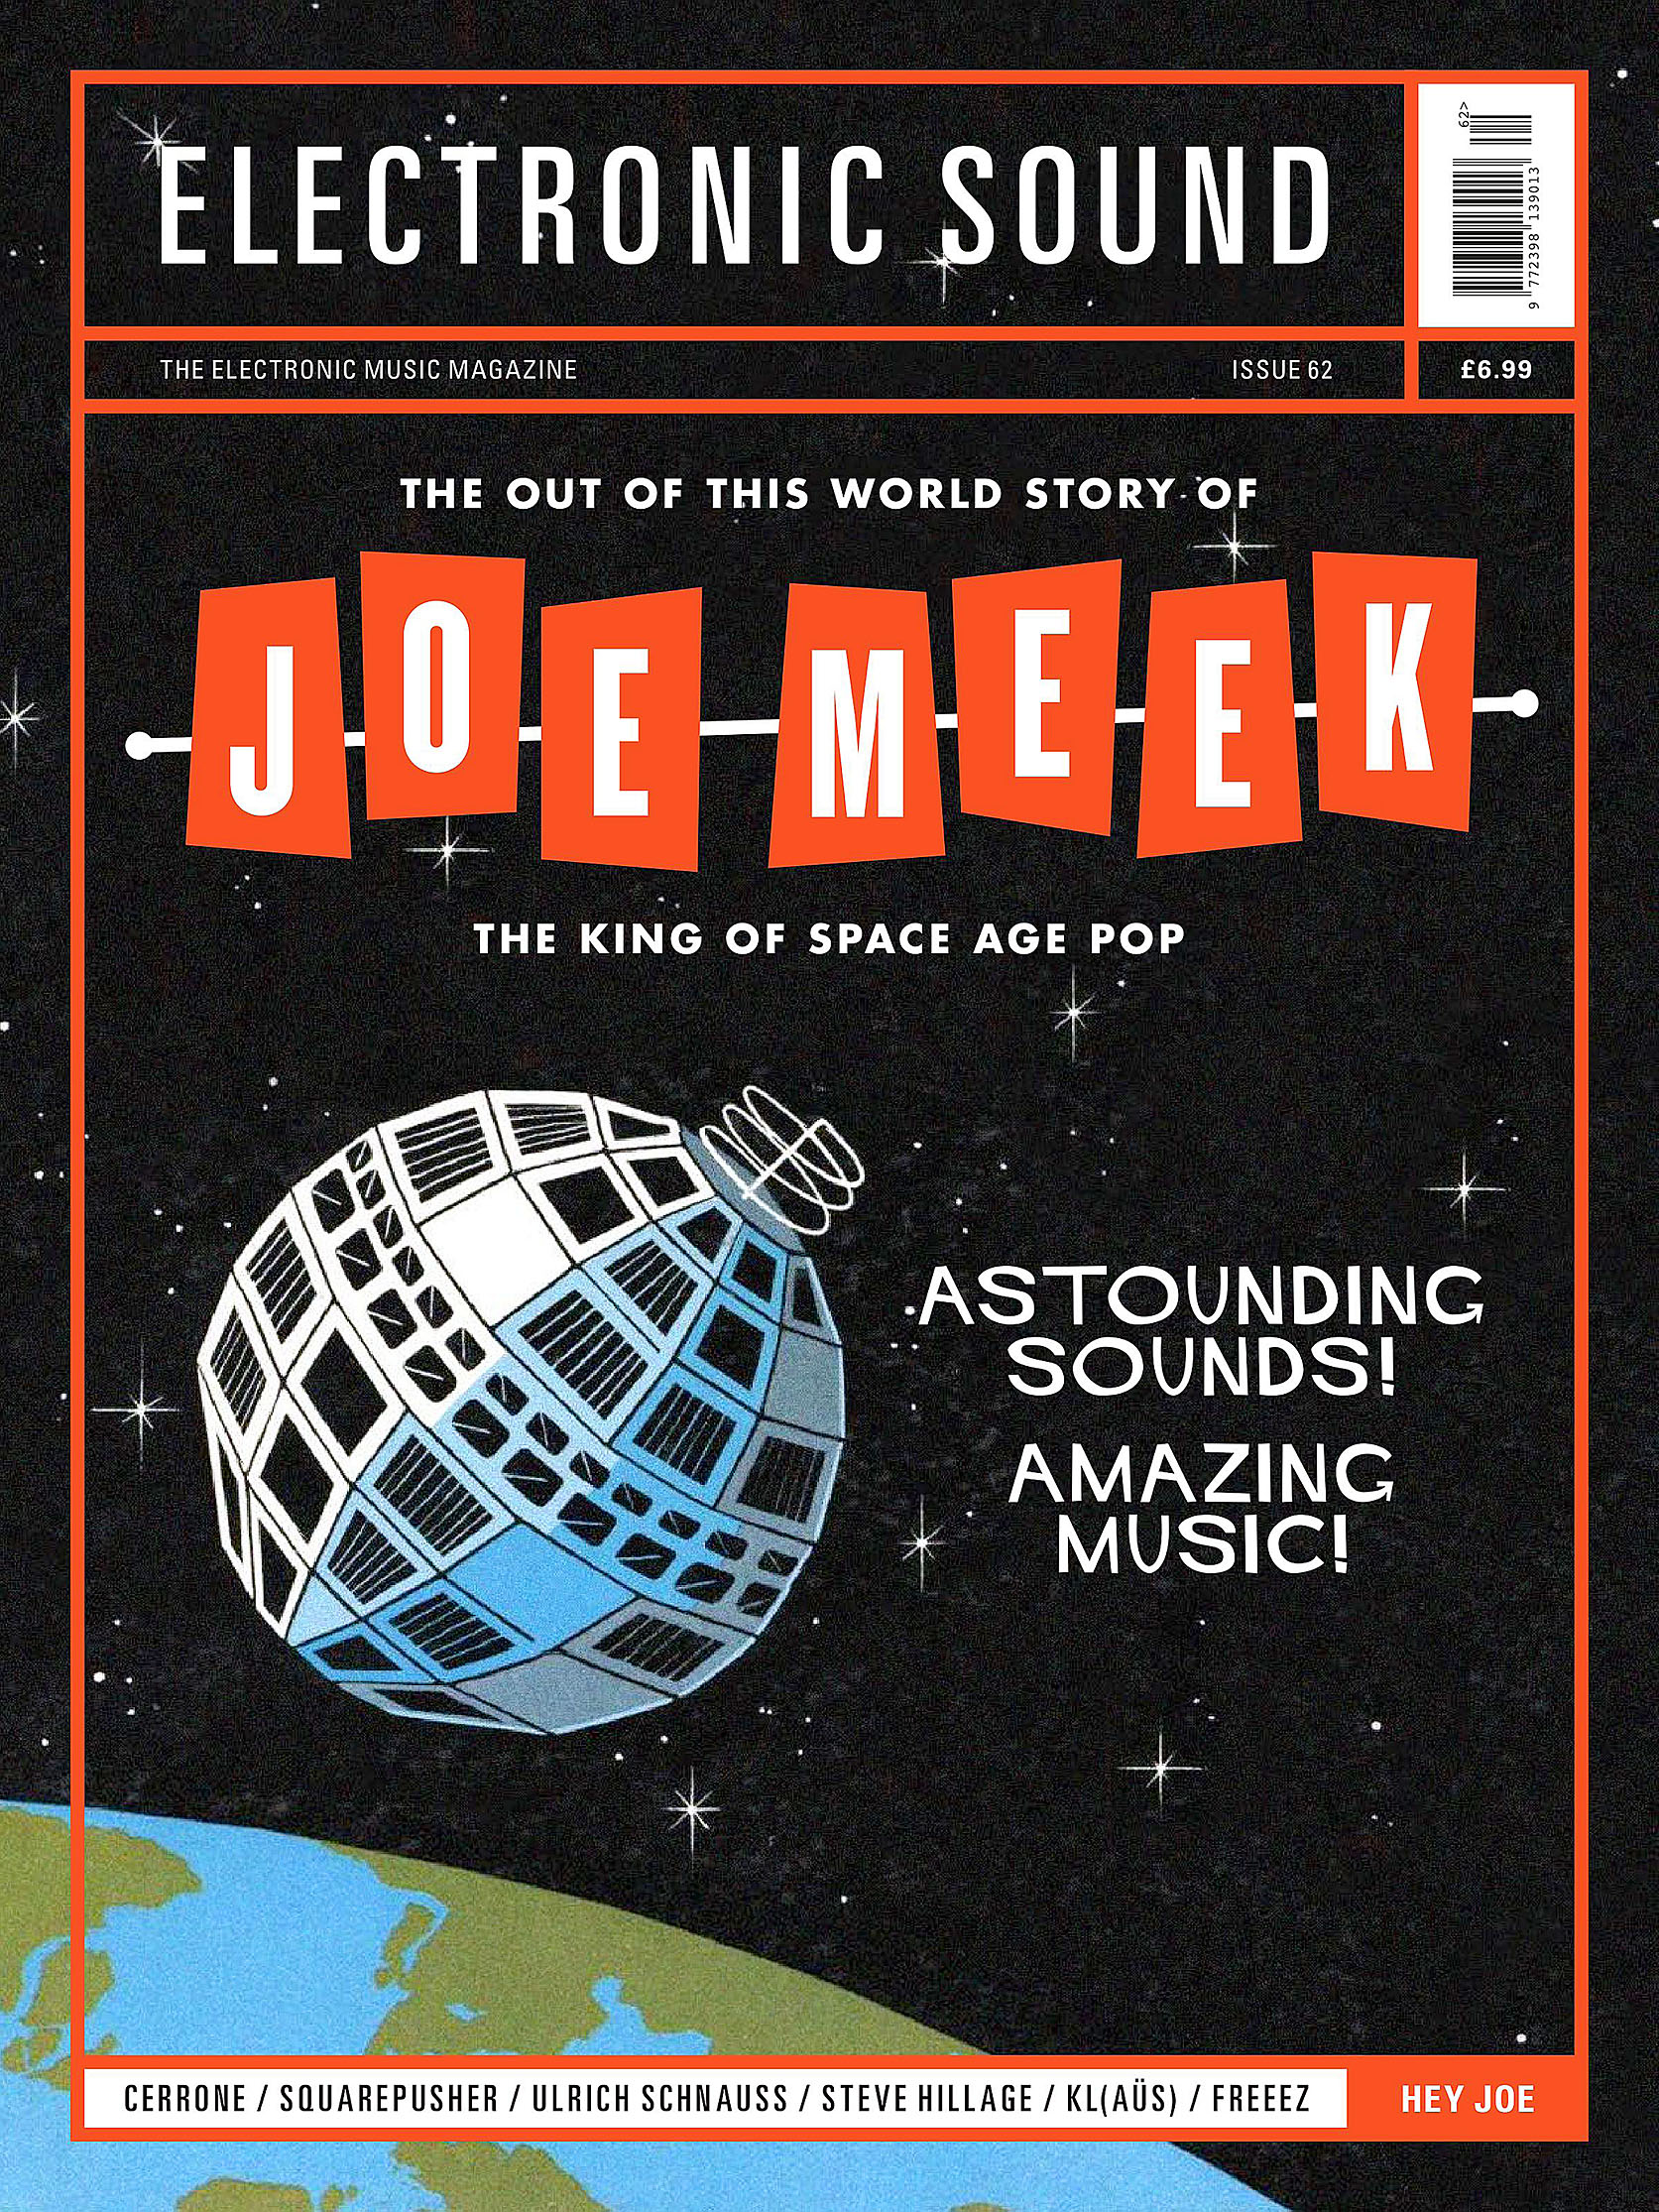 Electronic Sound  Issue 62  February 2020.jpg